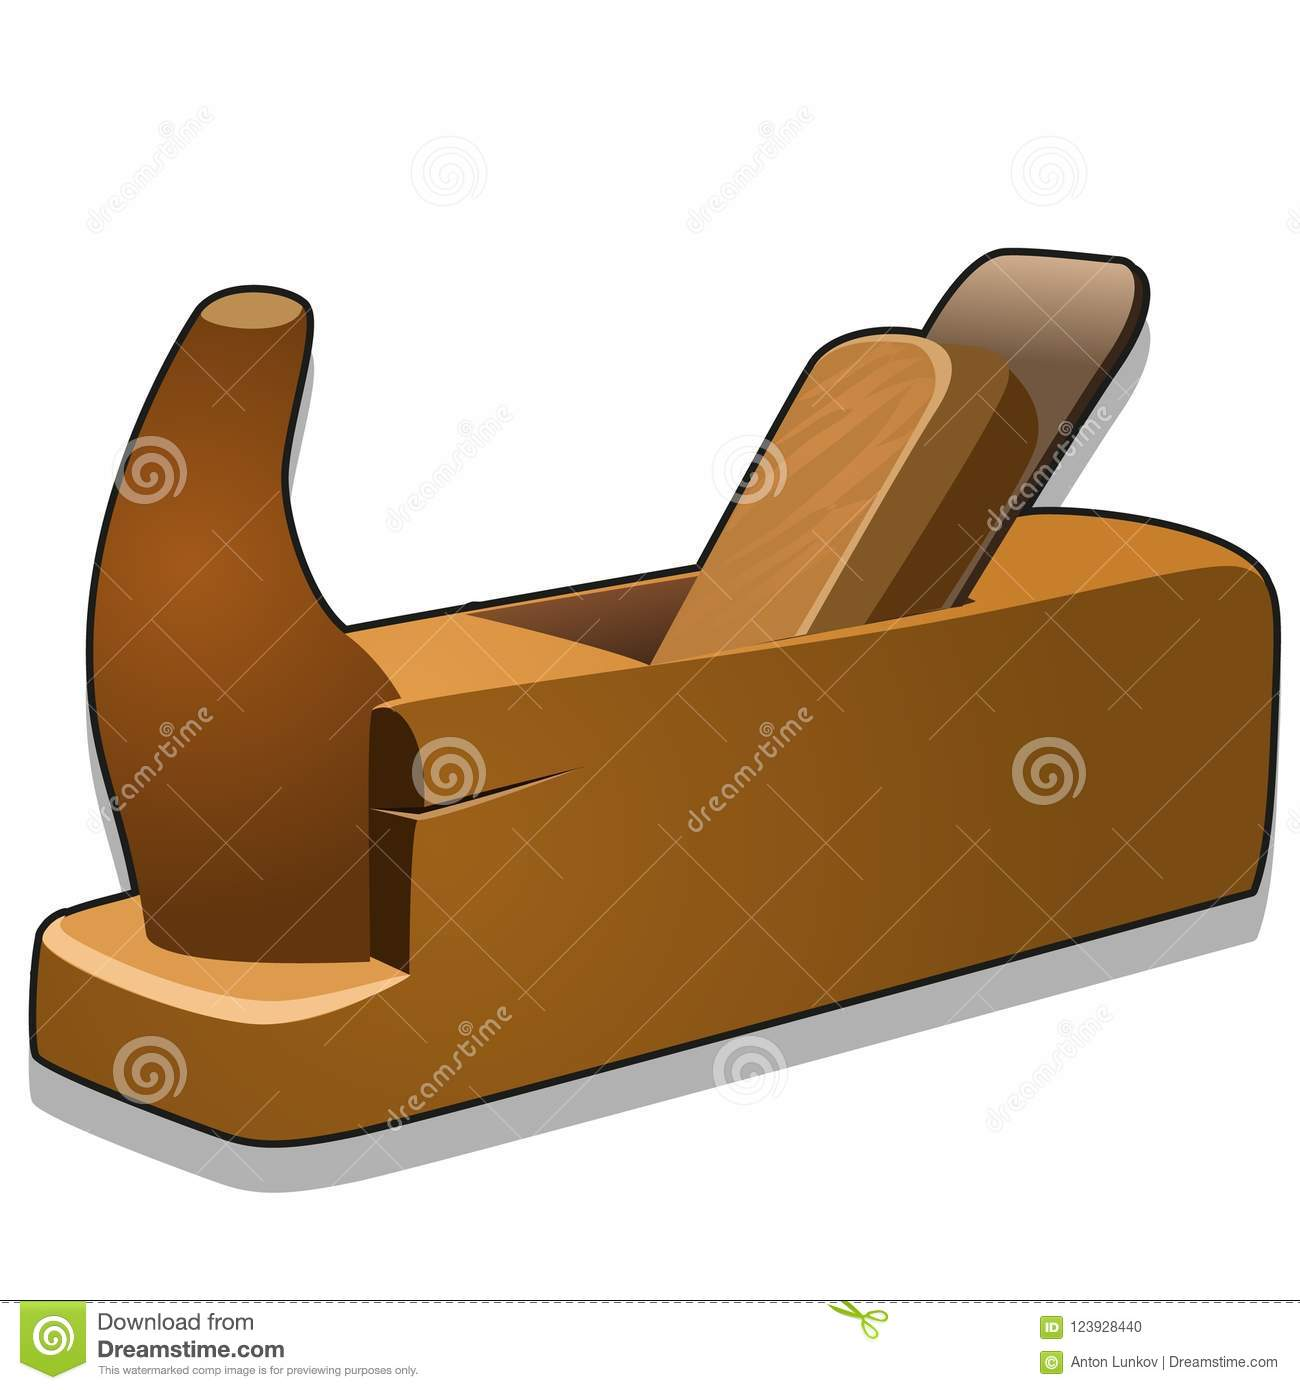 Wooden hand planer or jack-plane isolated on white background. Vector cartoon close-up illustration.